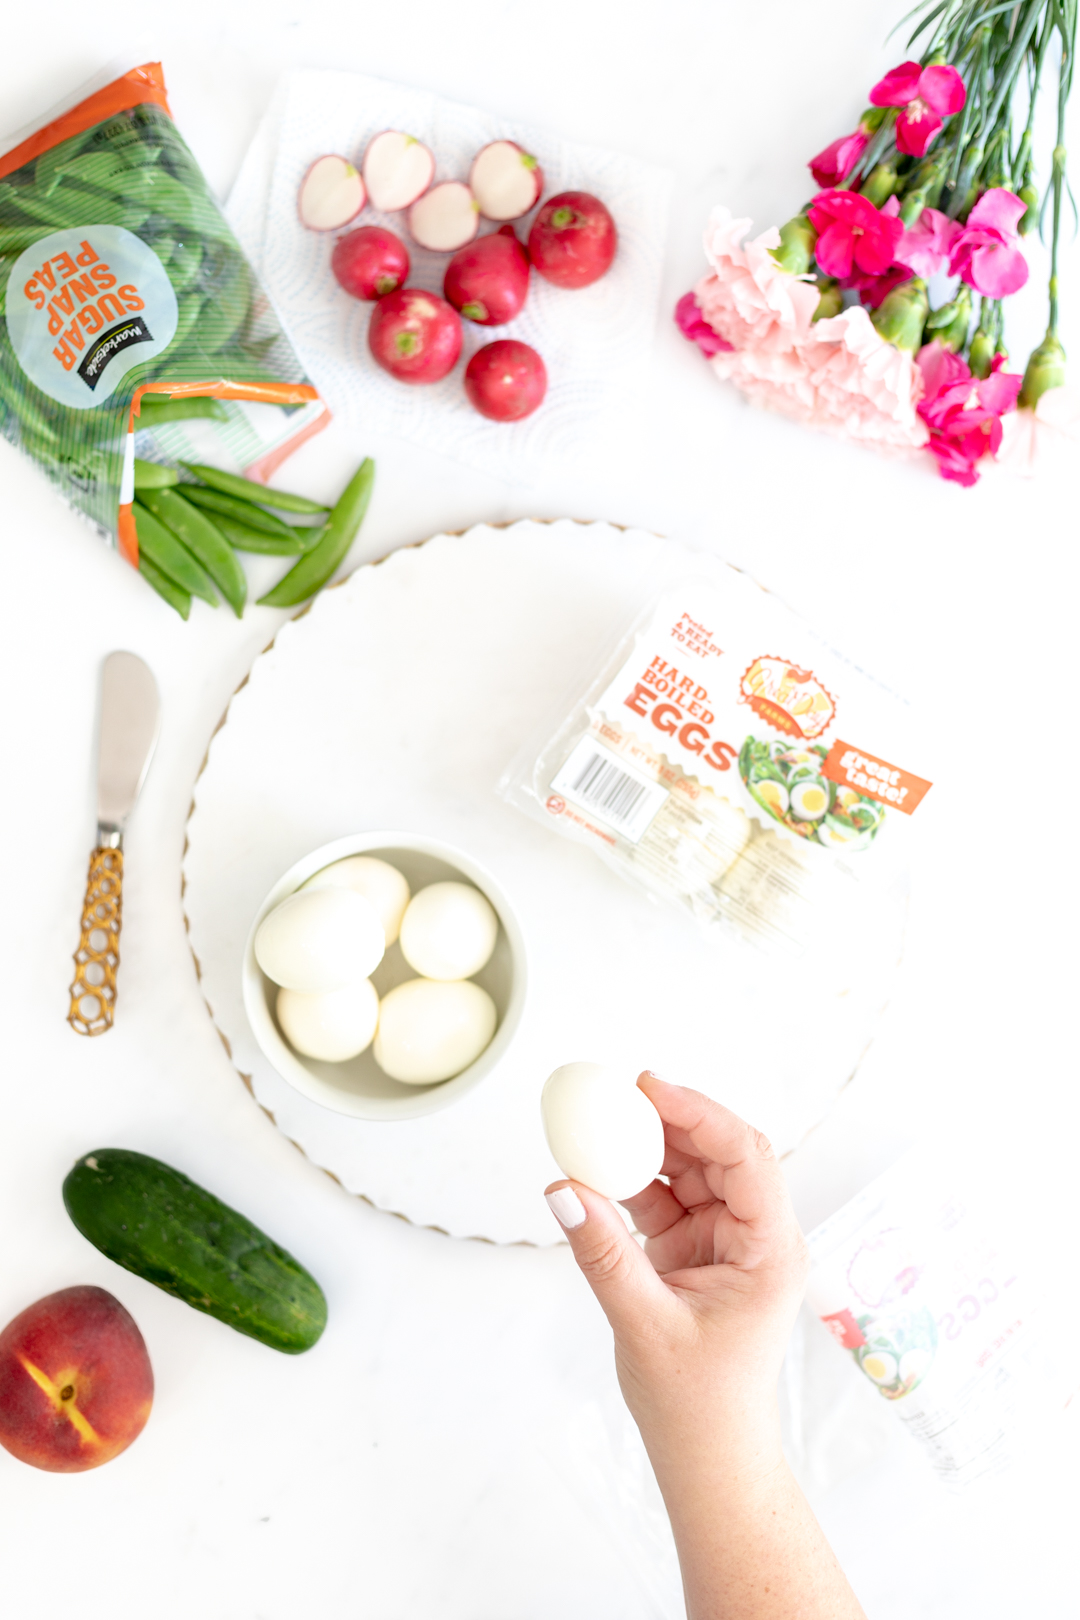 Boiled eggs, snap peas, mini cucumbers and radishes